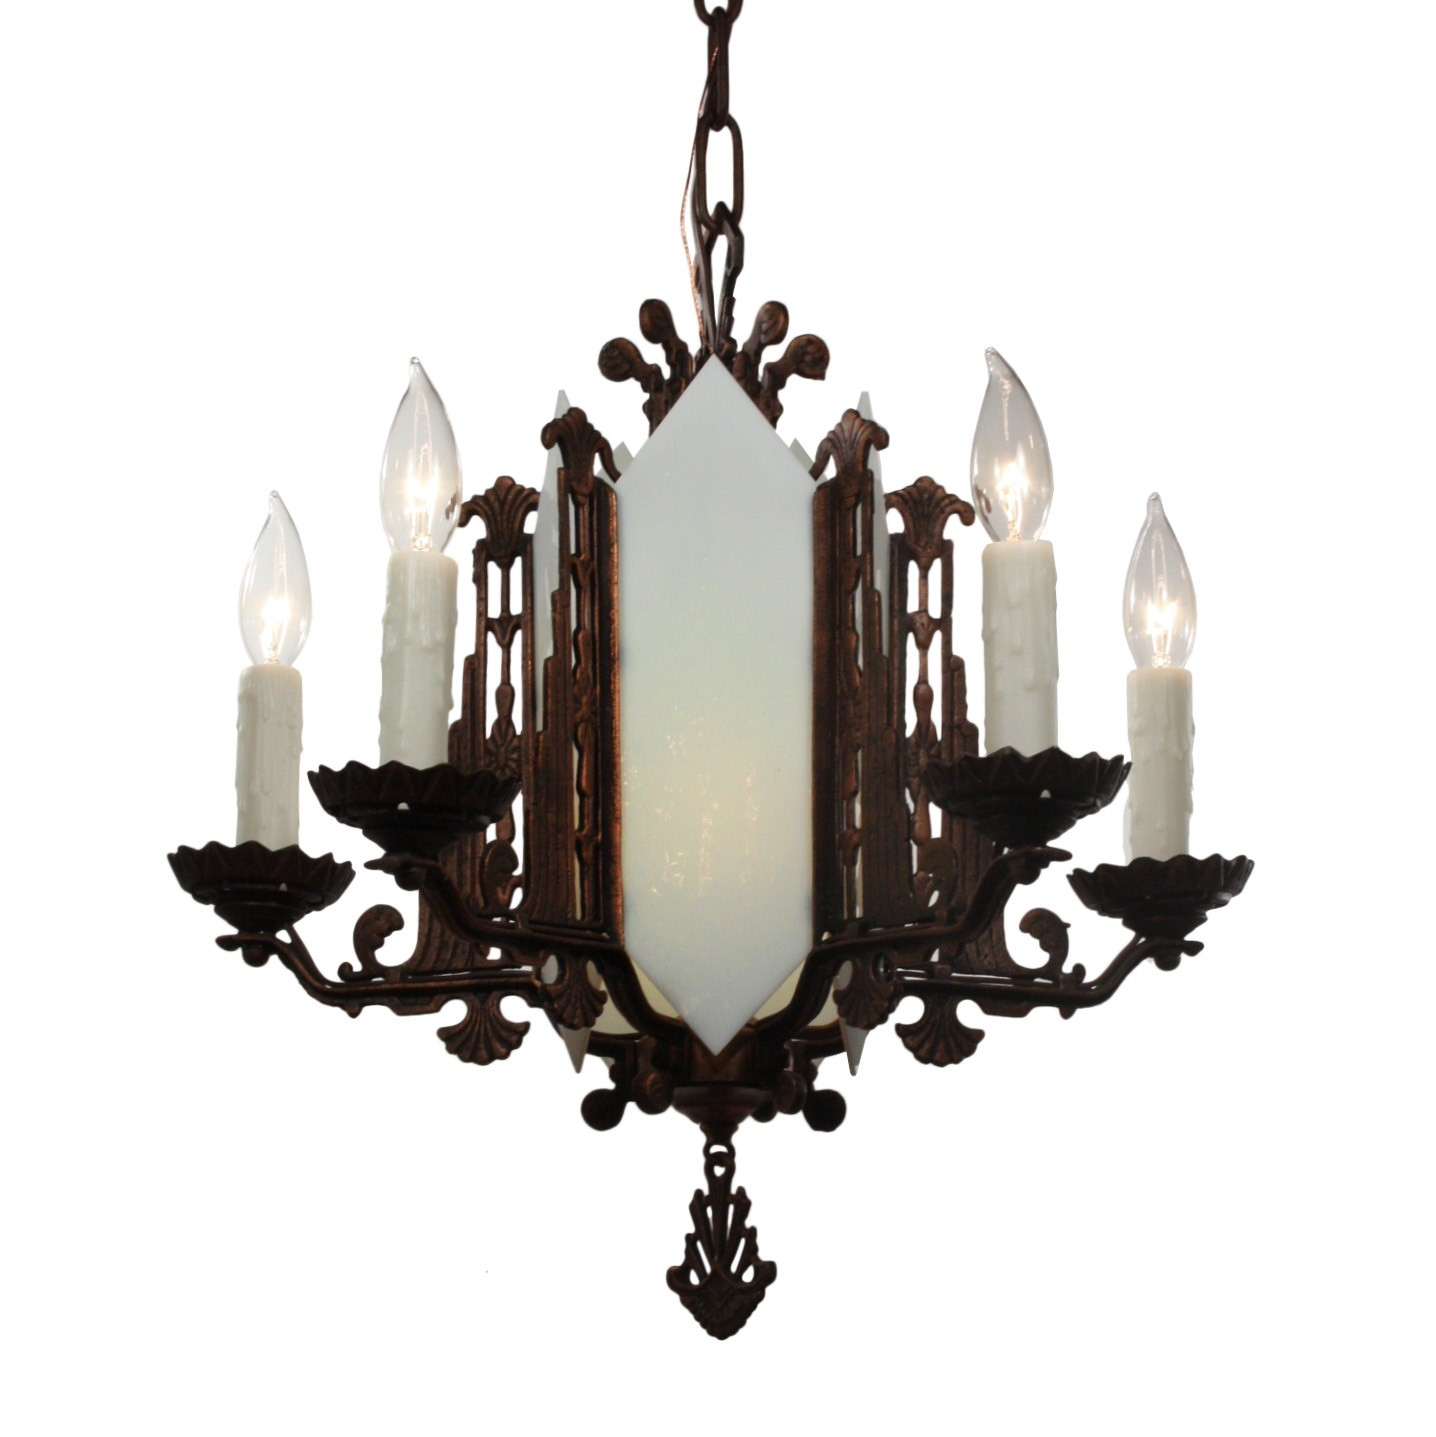 Cast Iron Chandelier Antique Antique Furniture In Cast Iron Antique Chandelier (Image 10 of 15)